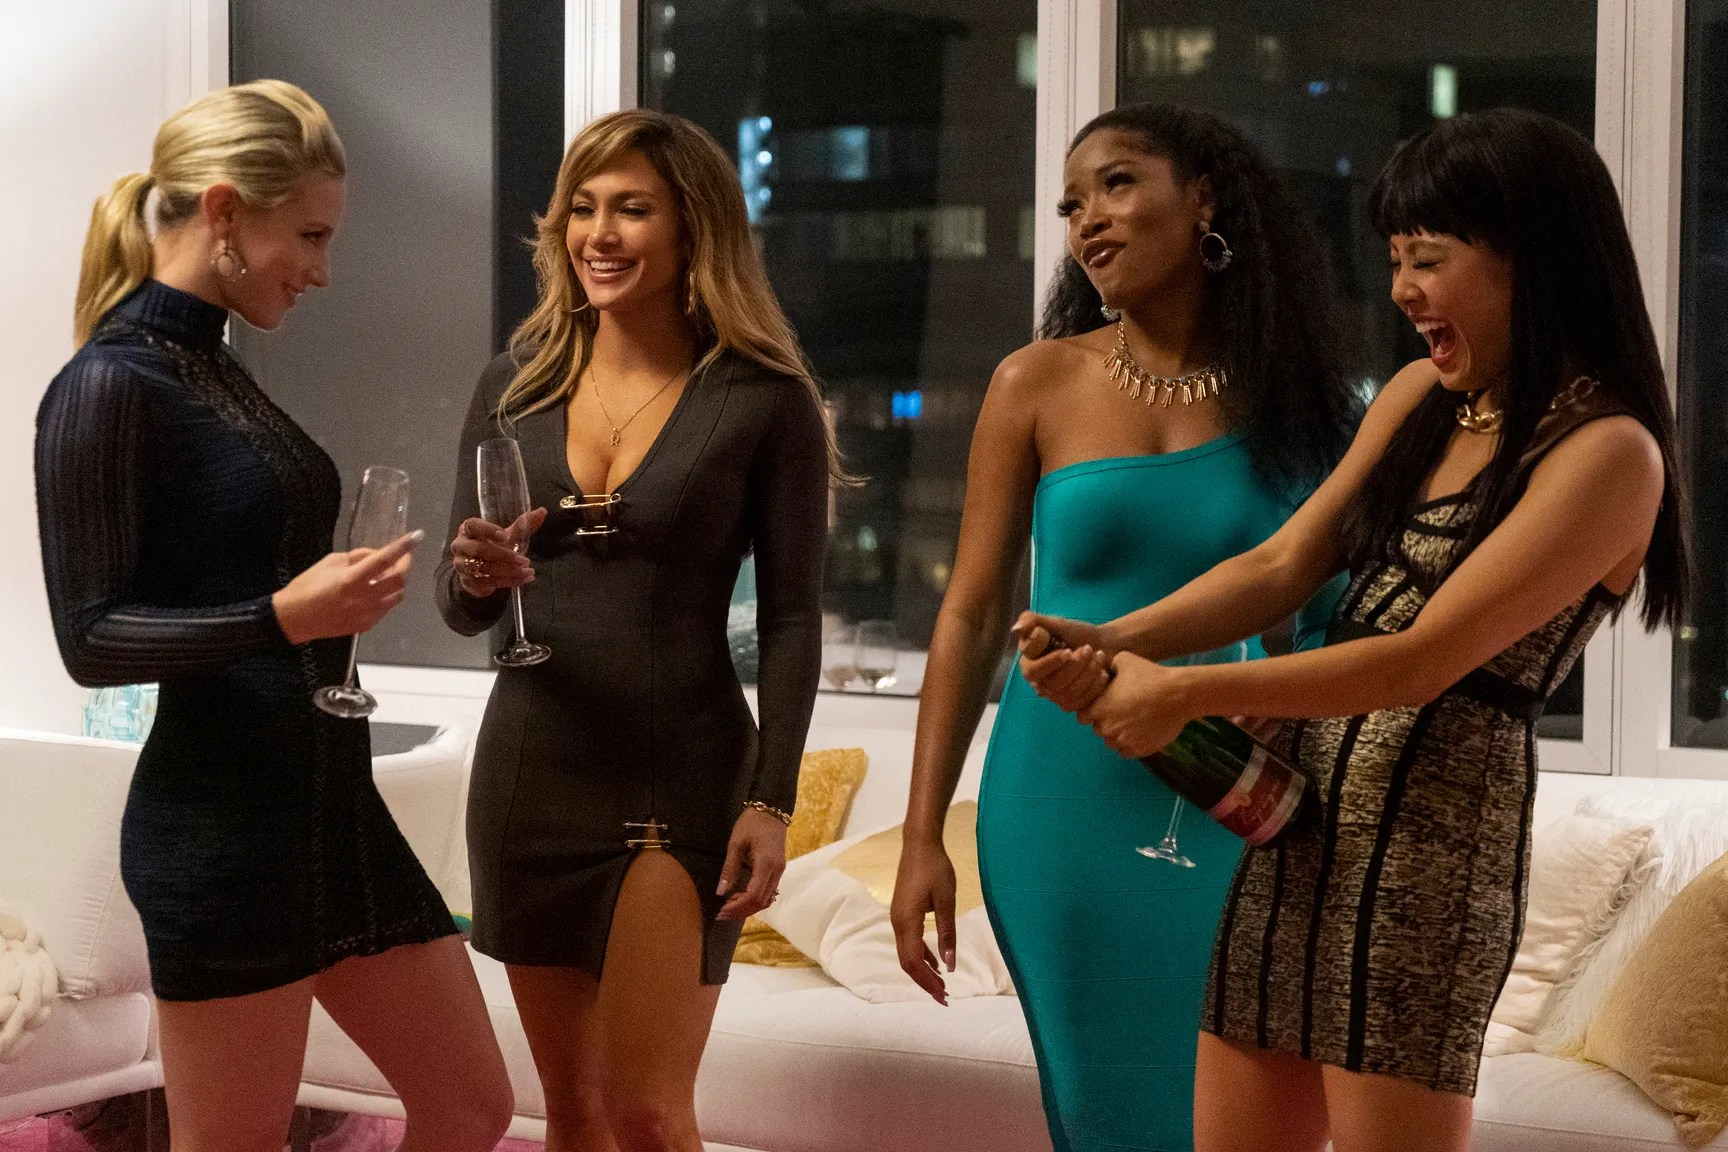 """""""Hustlers"""" follows a group of former strippers who navigate the business world after the 2008 economic collapse."""